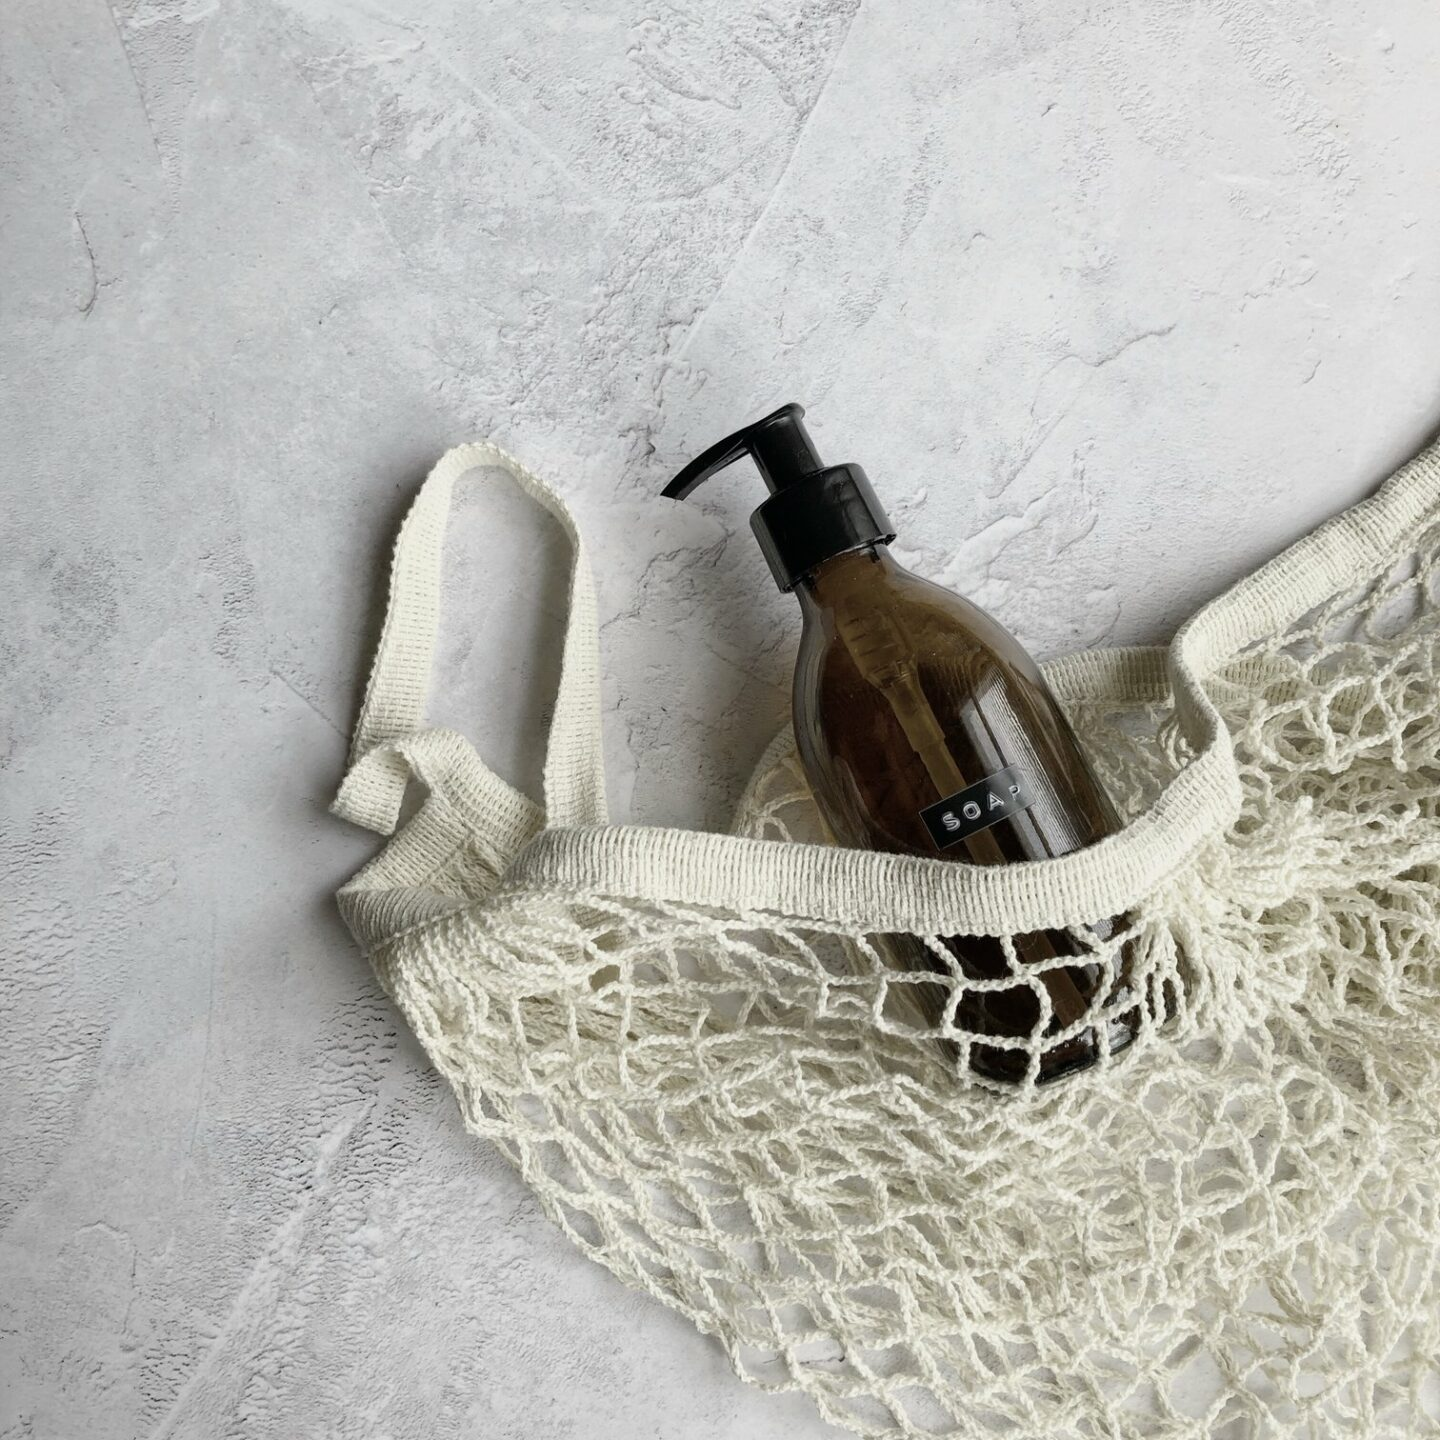 Reusable string bag and refillable glass bottle